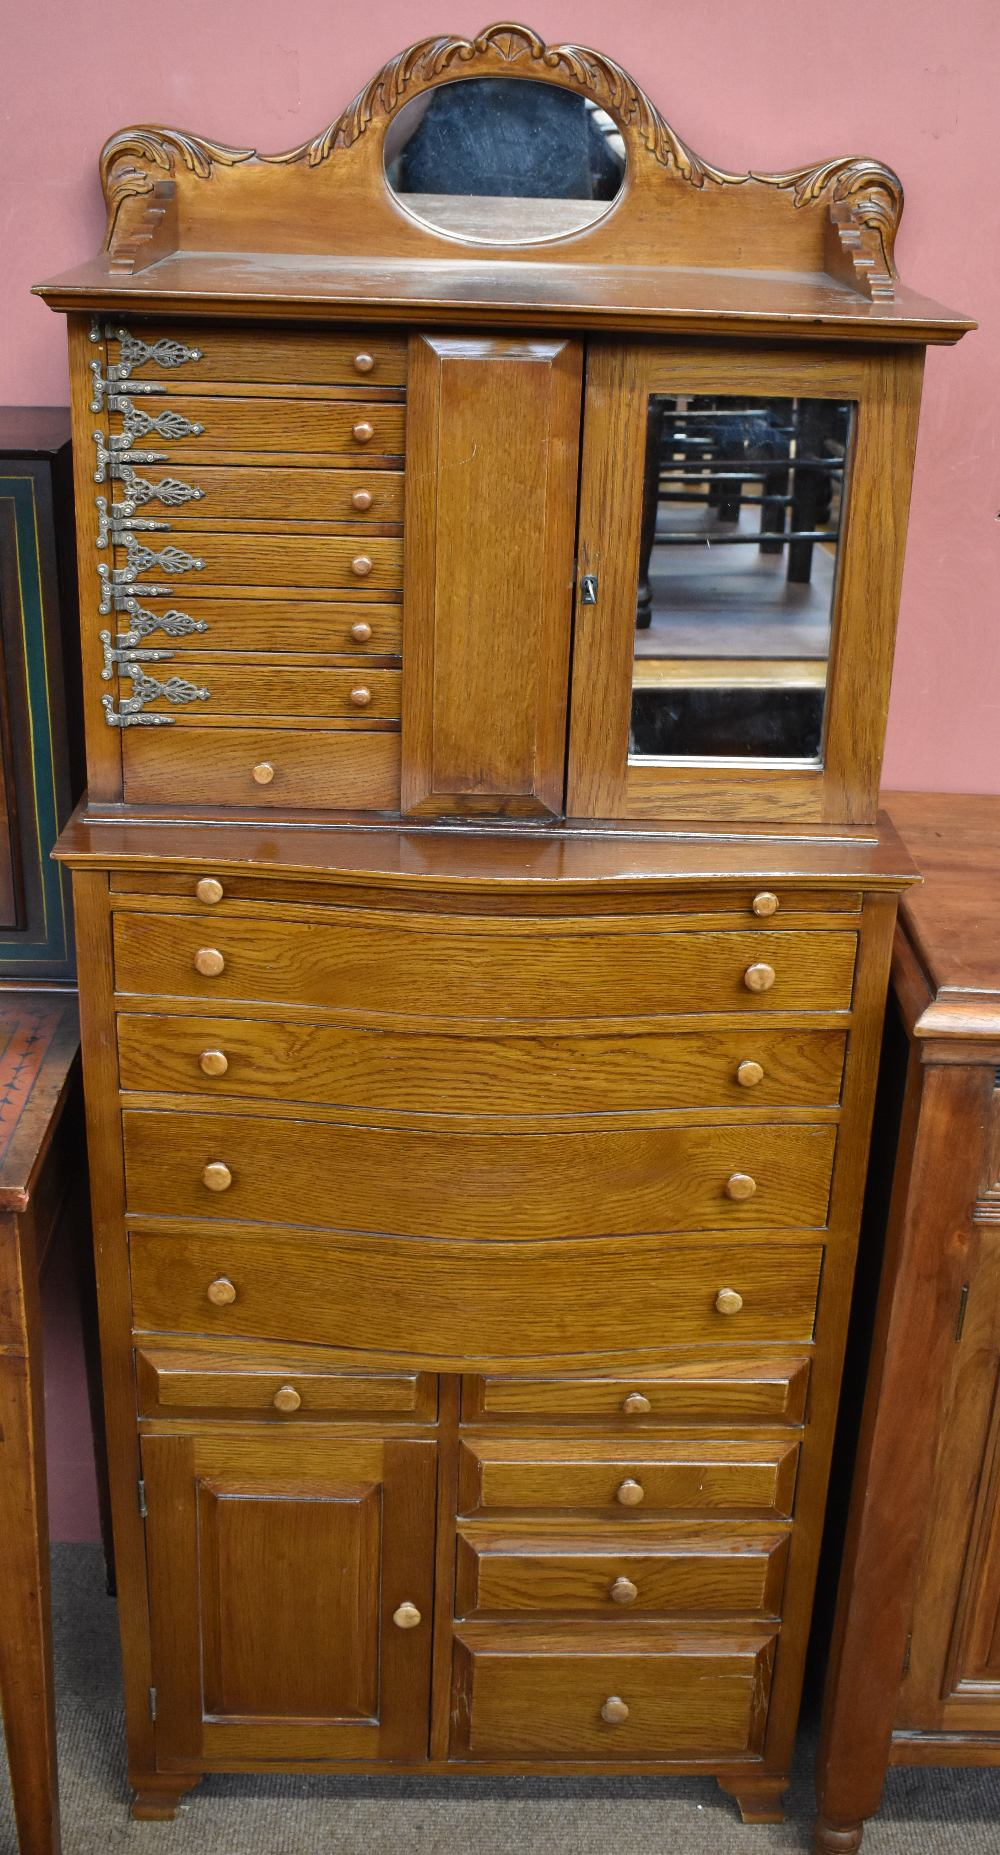 A modern Egyptian oak jewellery cabinet, with a mirrored cupboard door and seven small drawers